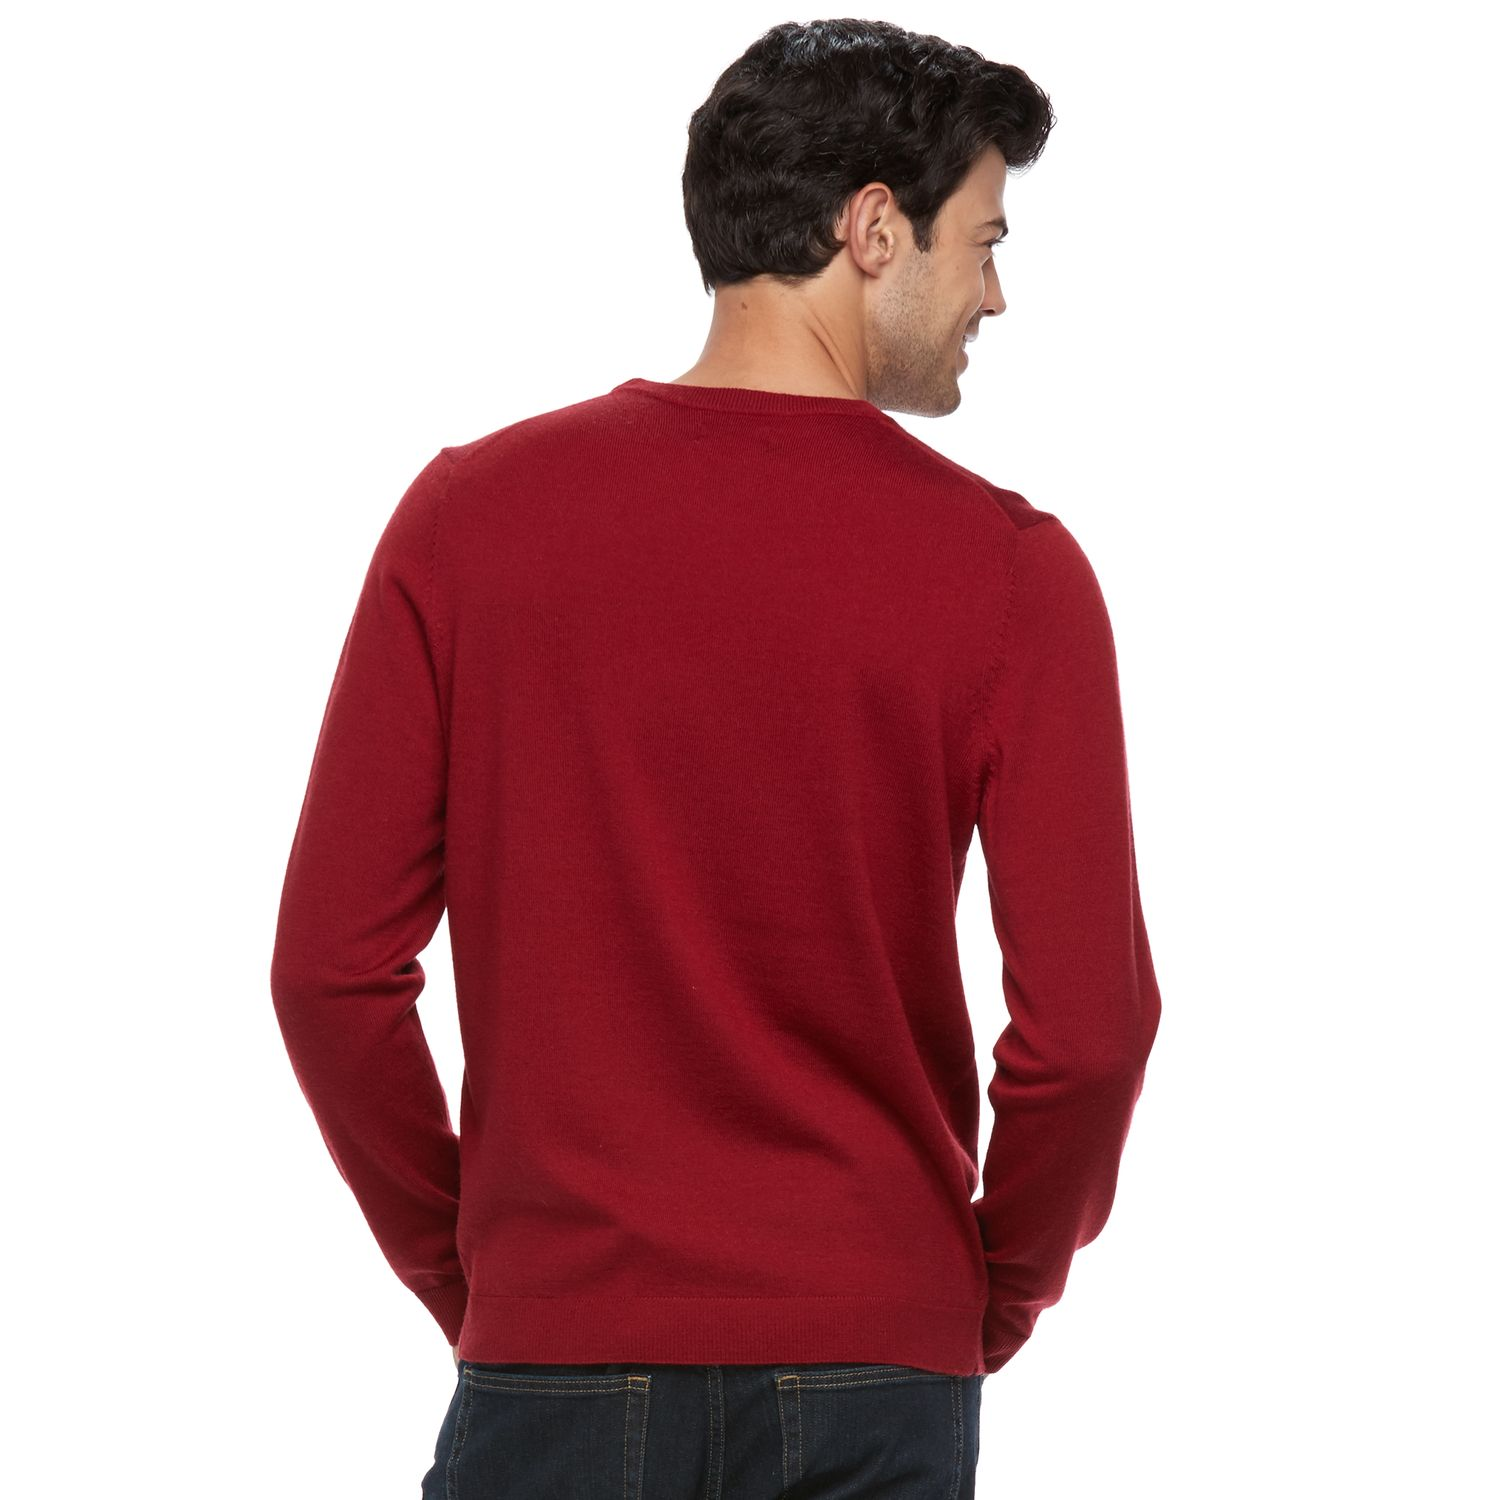 Mens Apt. 9 Sweaters - Tops, Clothing | Kohl's